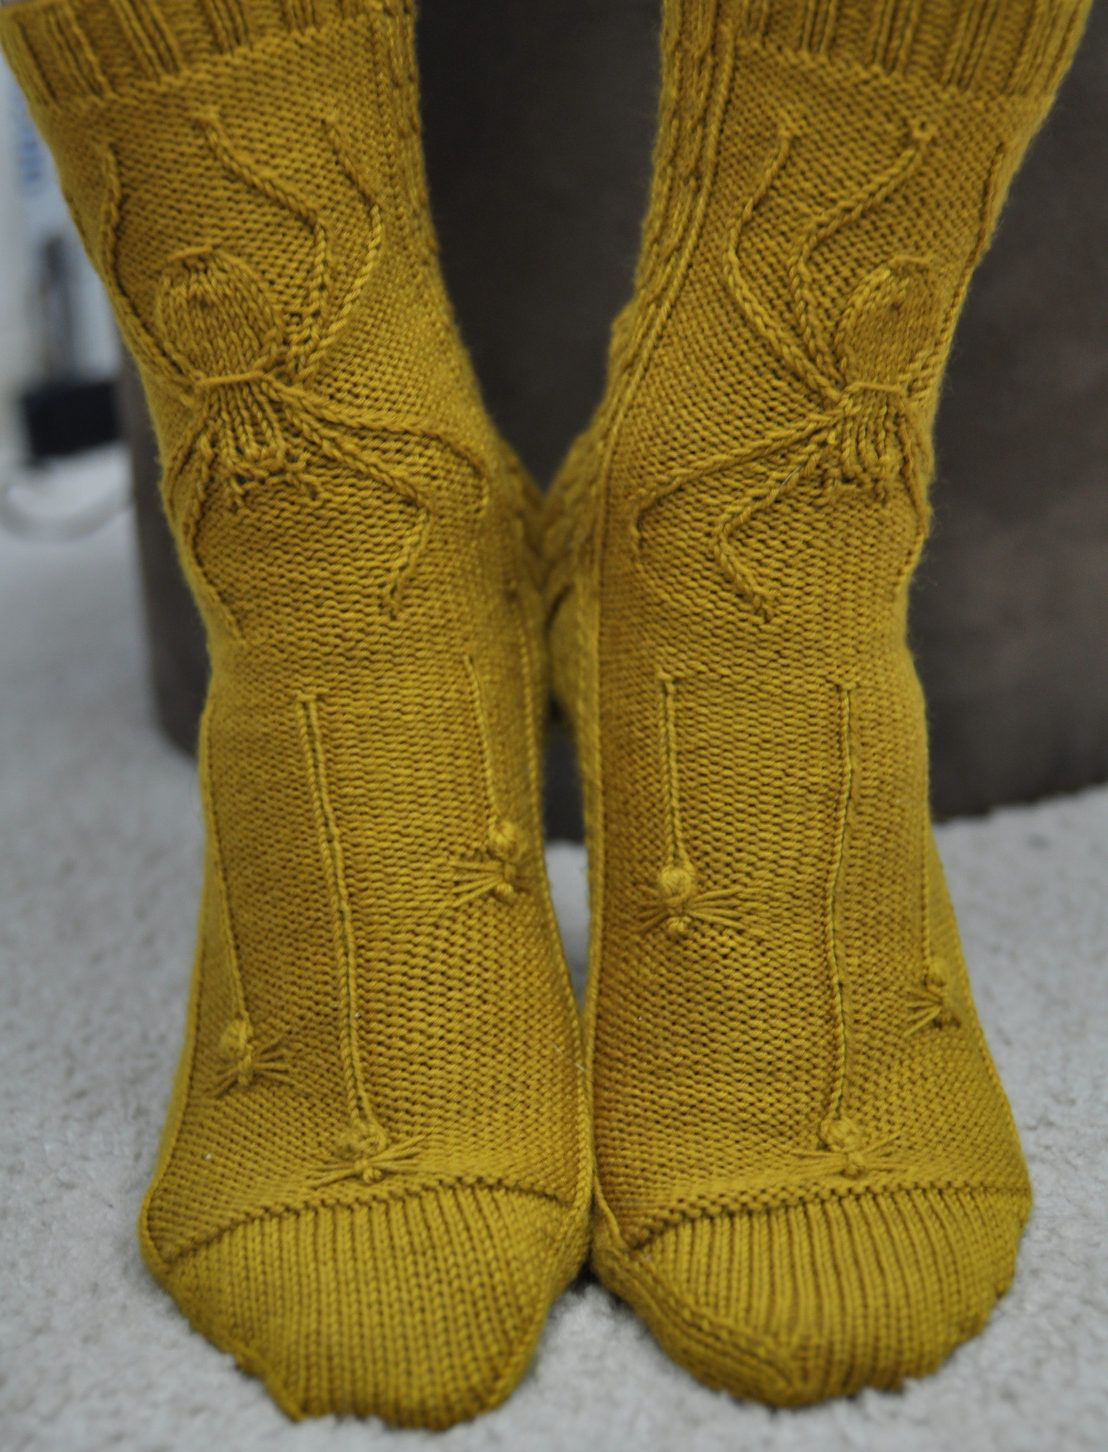 Free Knitting Pattern for Spider Socks - Terri Knight adapted ...